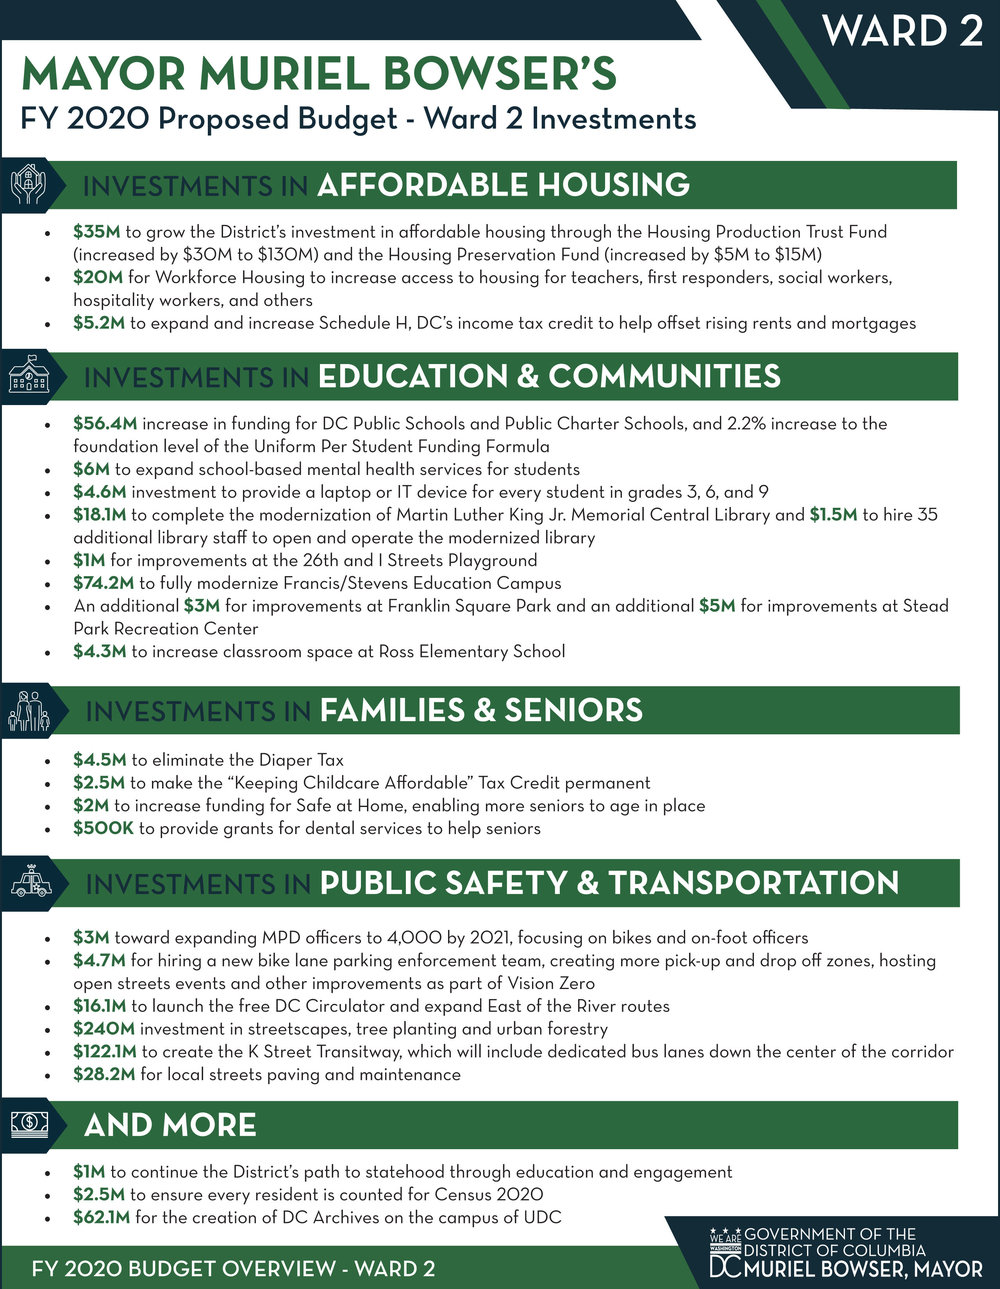 Ward 2 mayoral liaison Amr Kotb distributed this handout at the April 2 ANC 2E meeting. Ruth Werner, committee director for Councilmember Jack Evans, reminded meeting attendees of the budget hearings now underway.